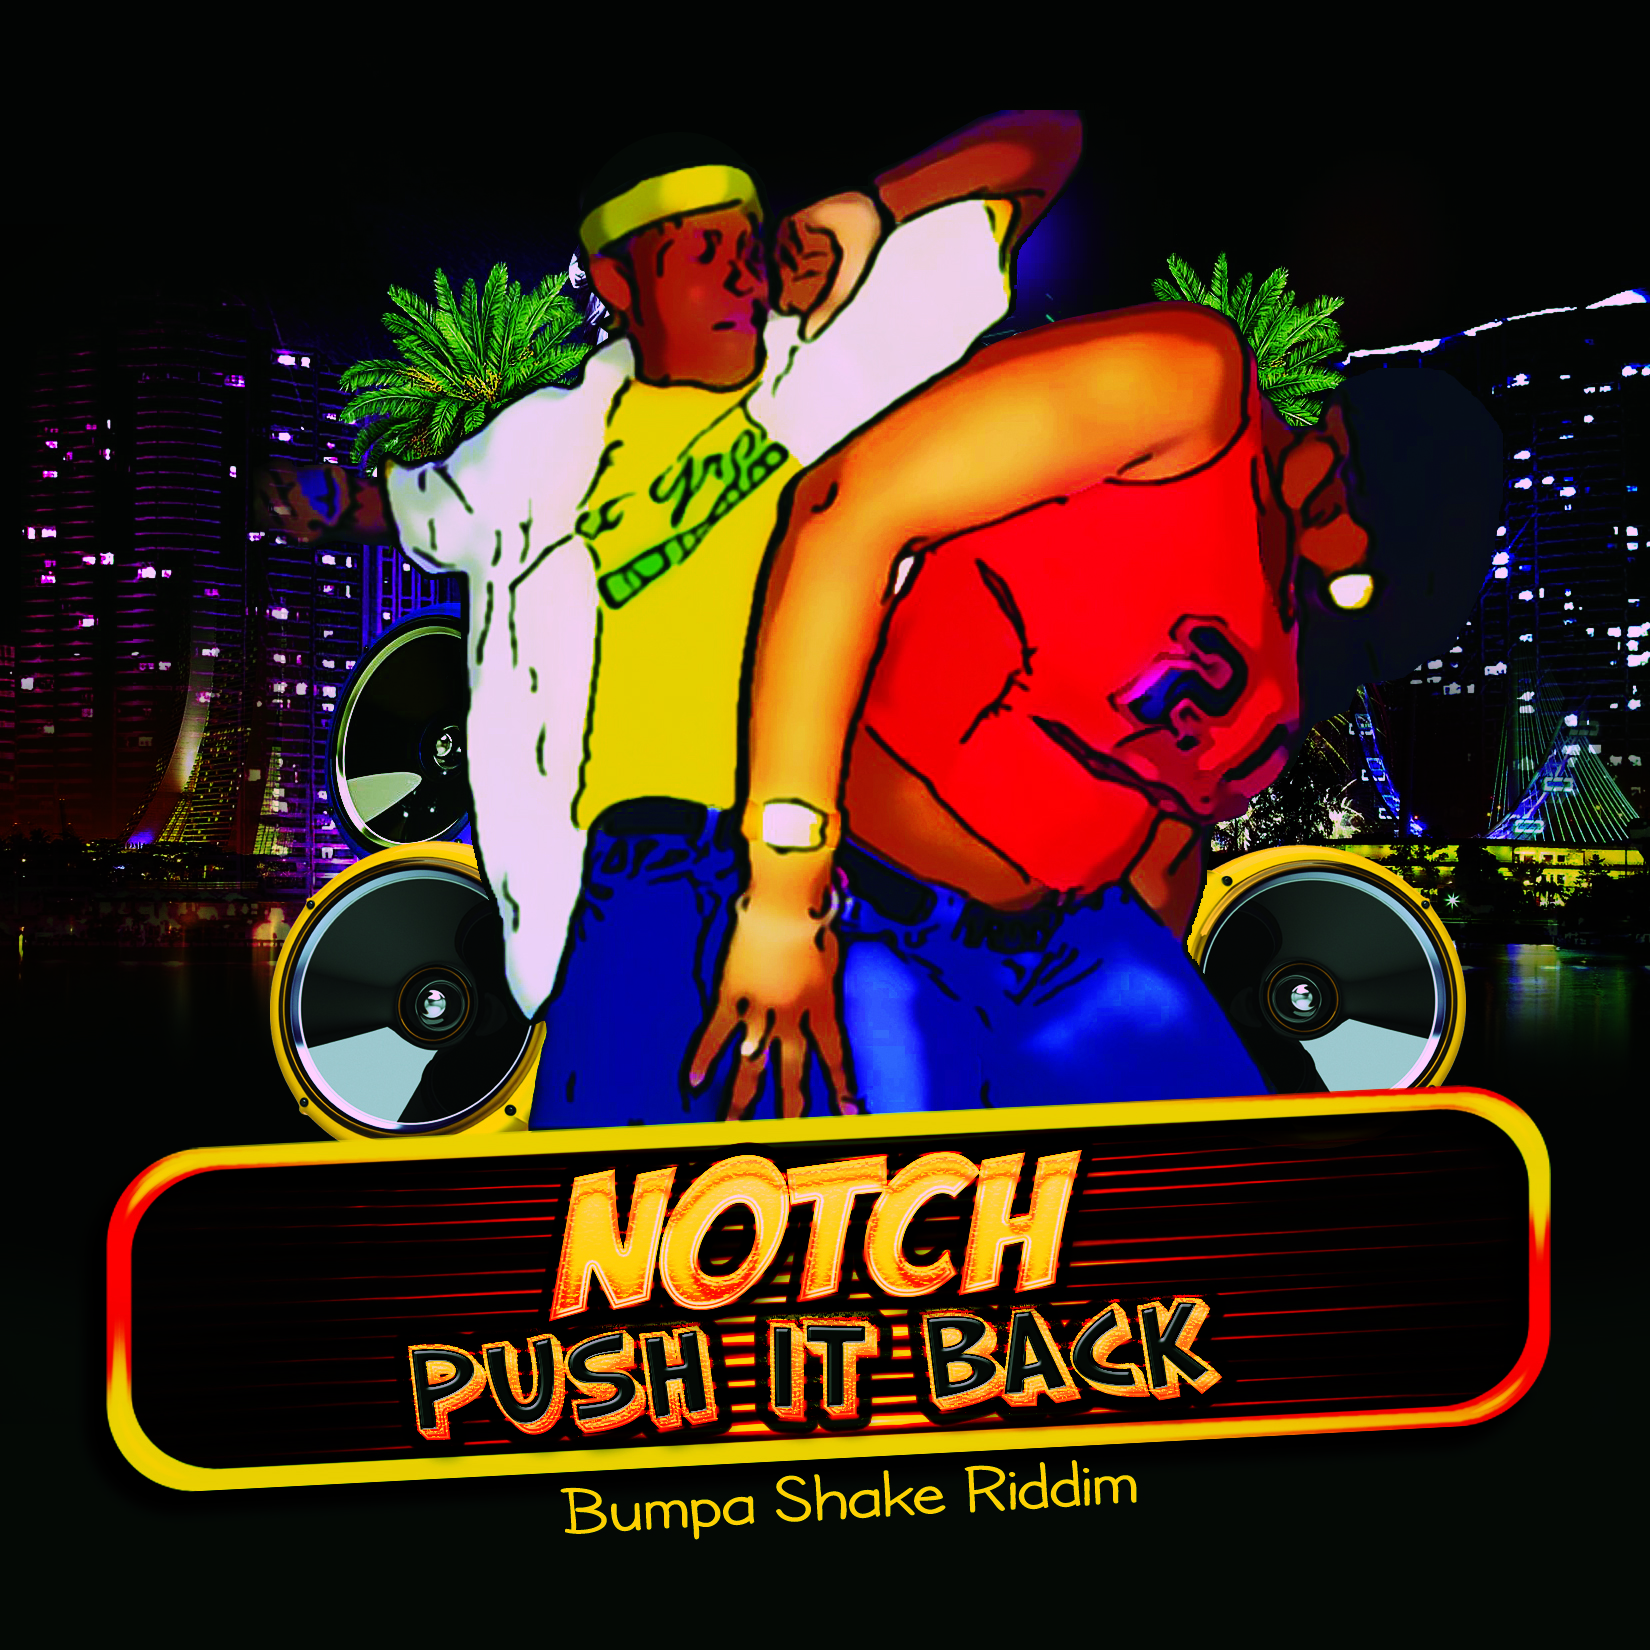 Push It Back (Bumpa Shake Riddim)